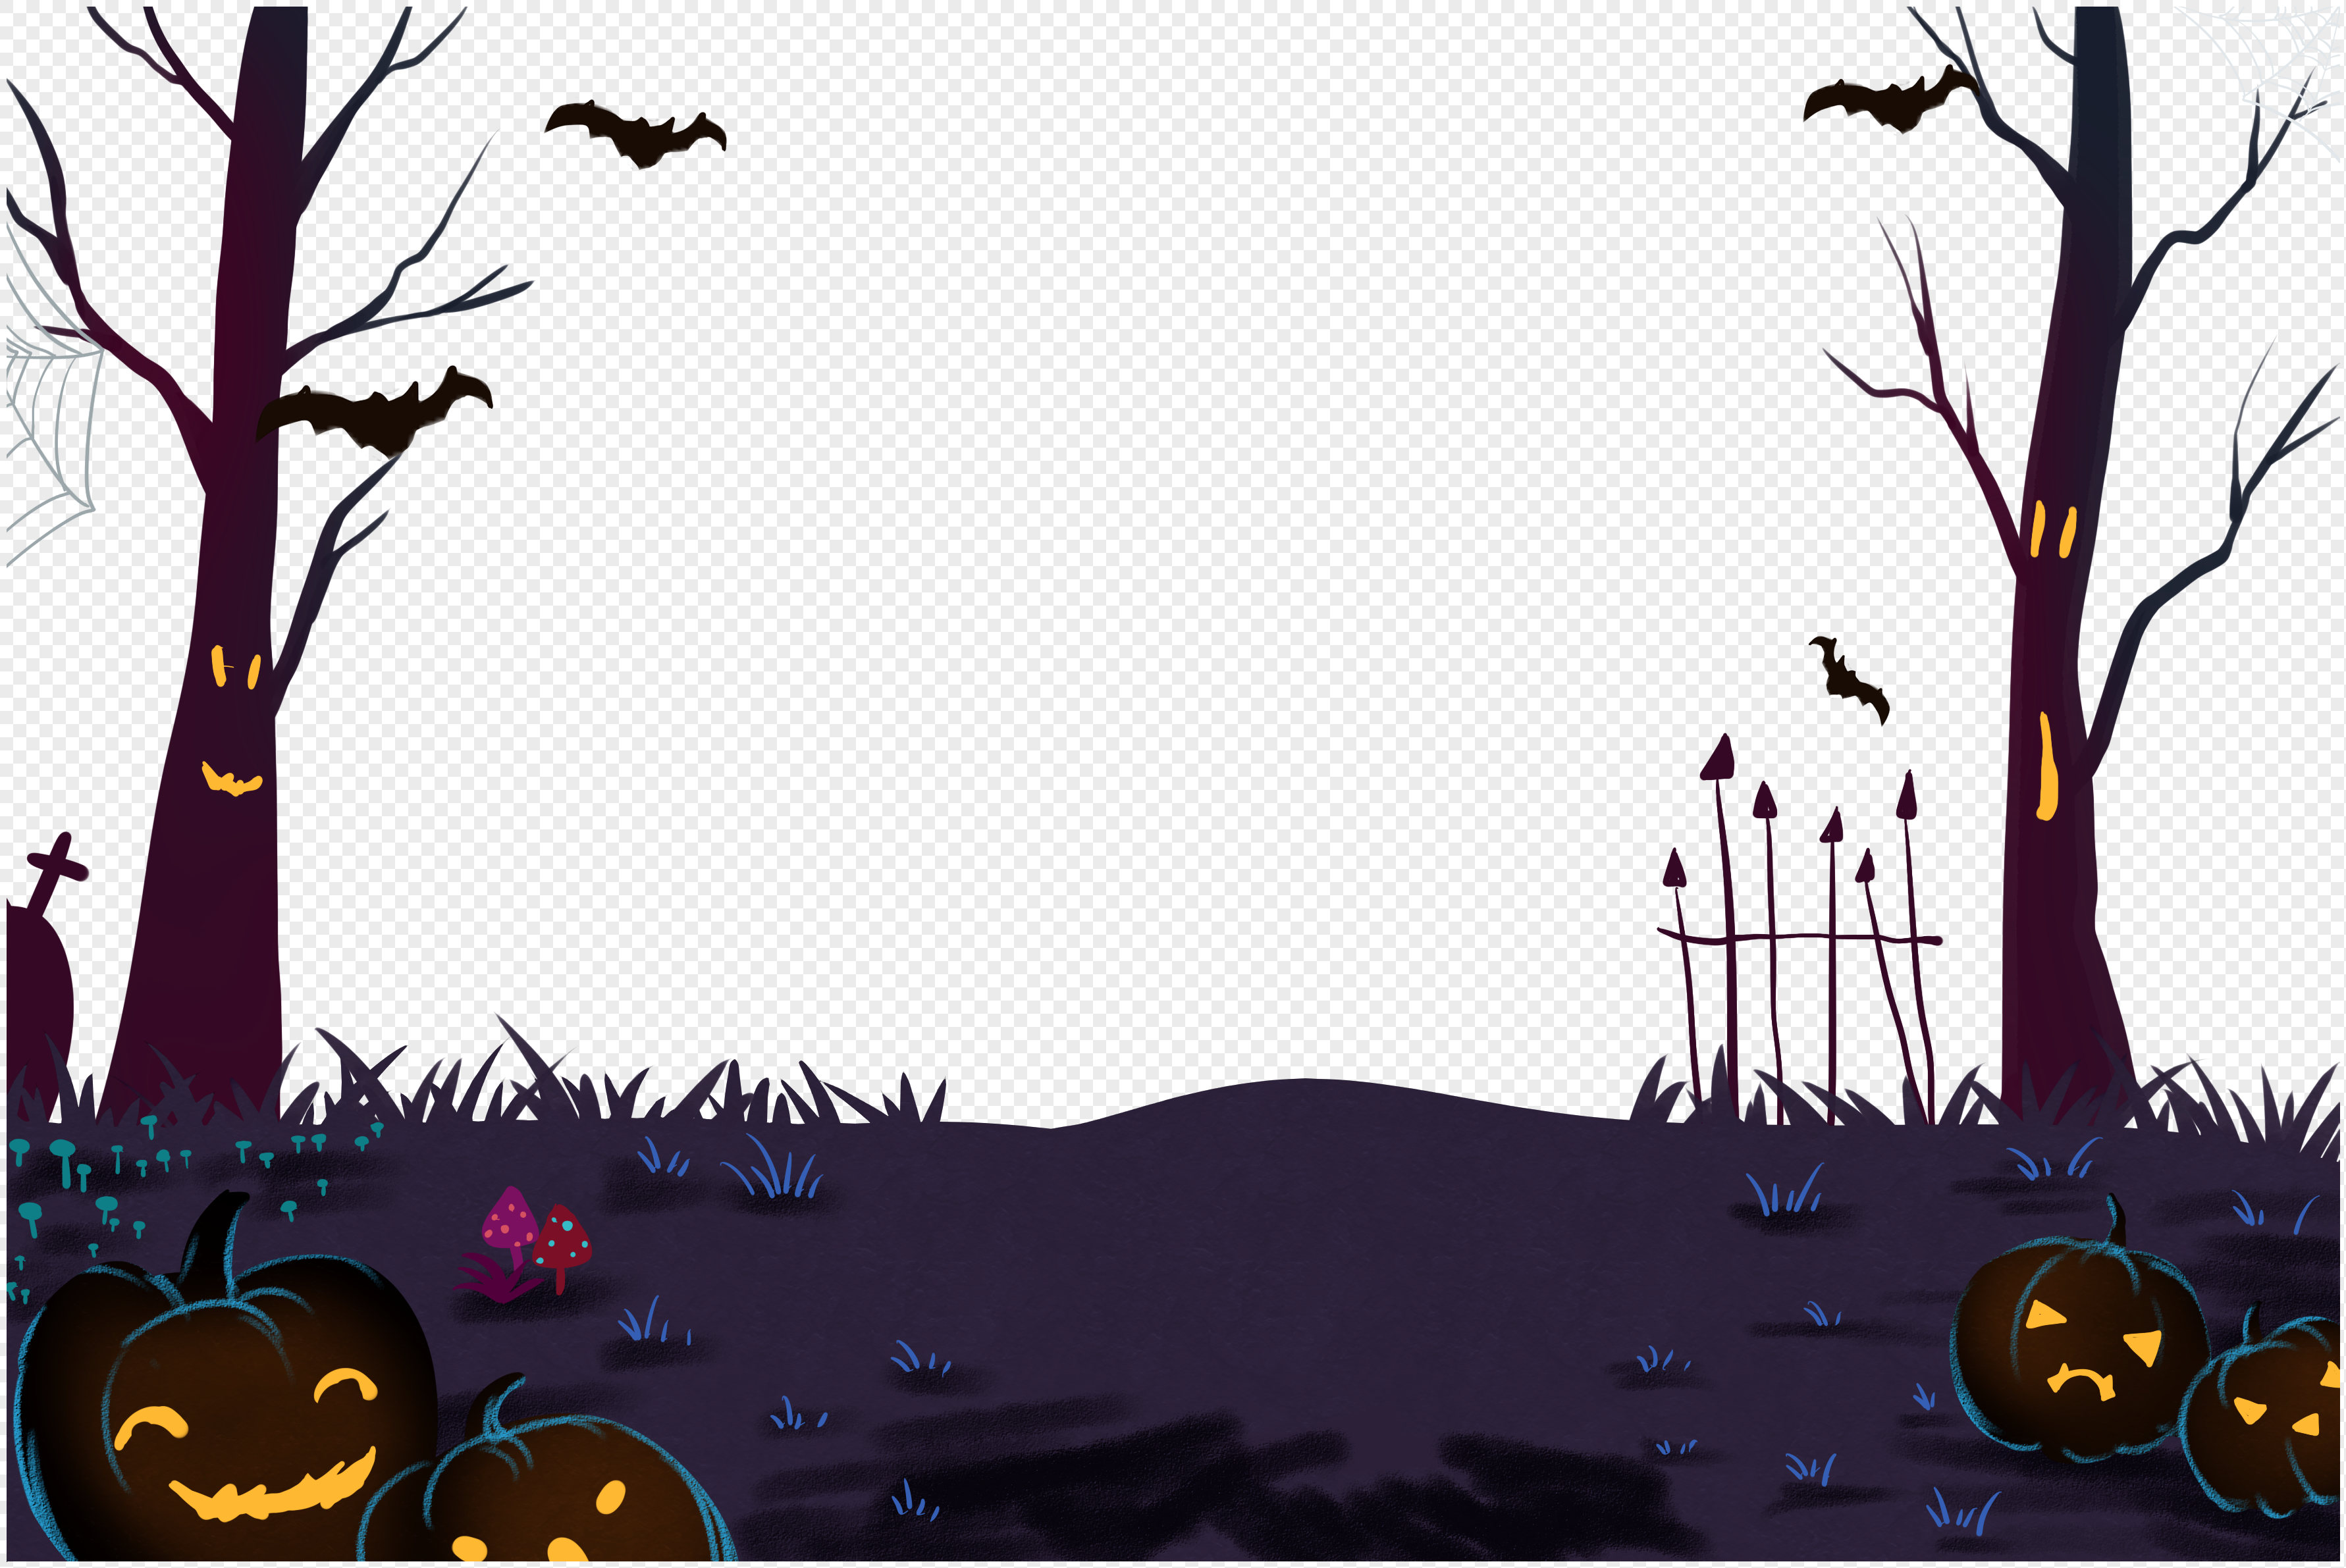 Halloween Background Png (82+ images in Collection) Page 1.